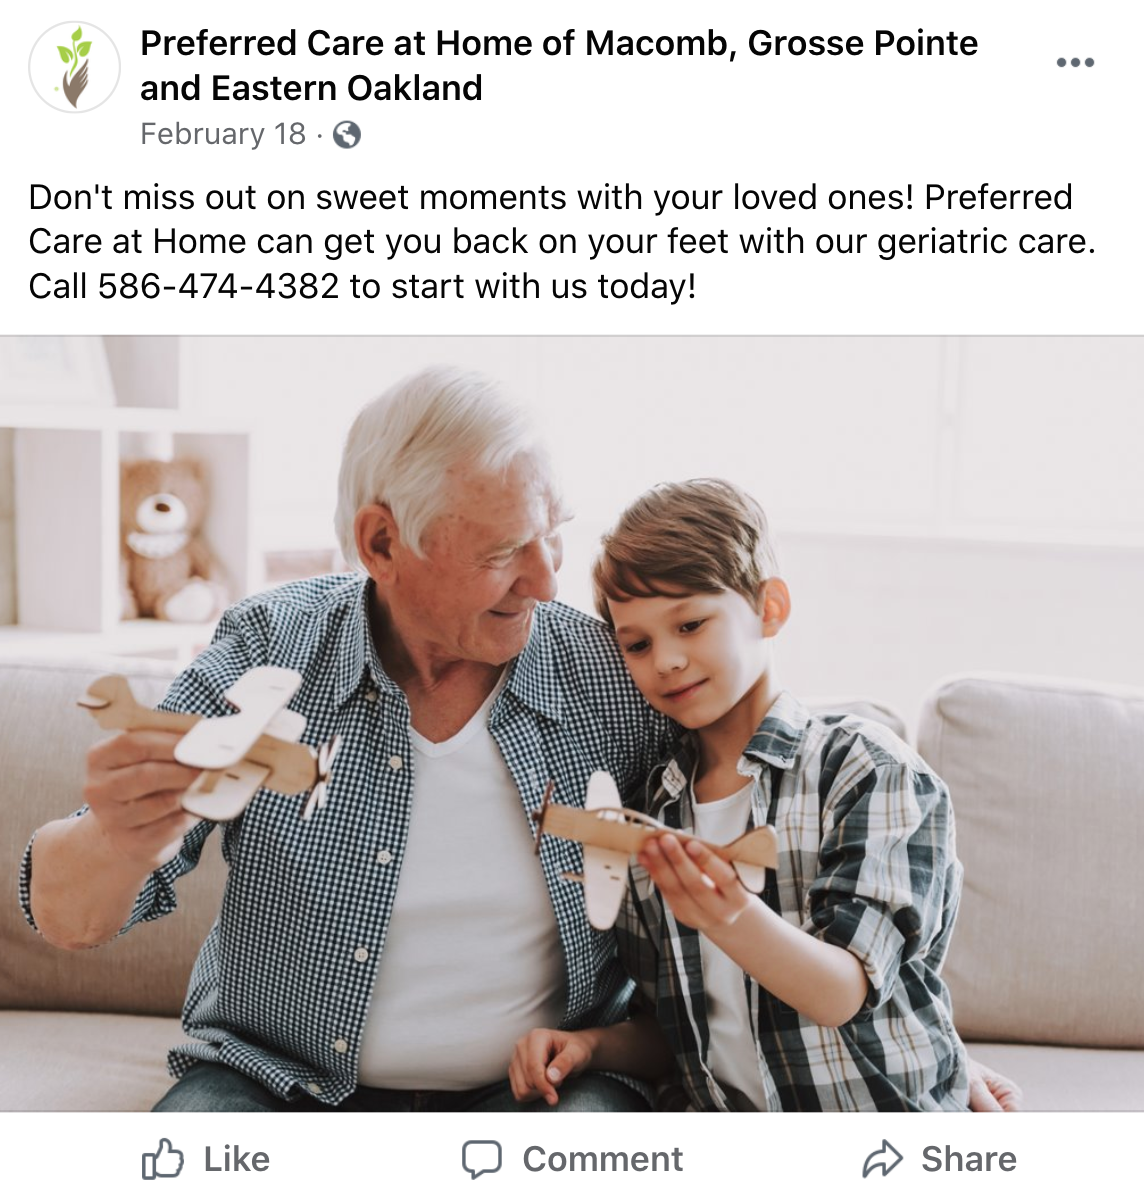 Senior Care Facility Uses Hyper-Targeted Social Marketing to Recruit Caregivers at 112 Leads/mo. & Generate 300 Client Leads/yr.